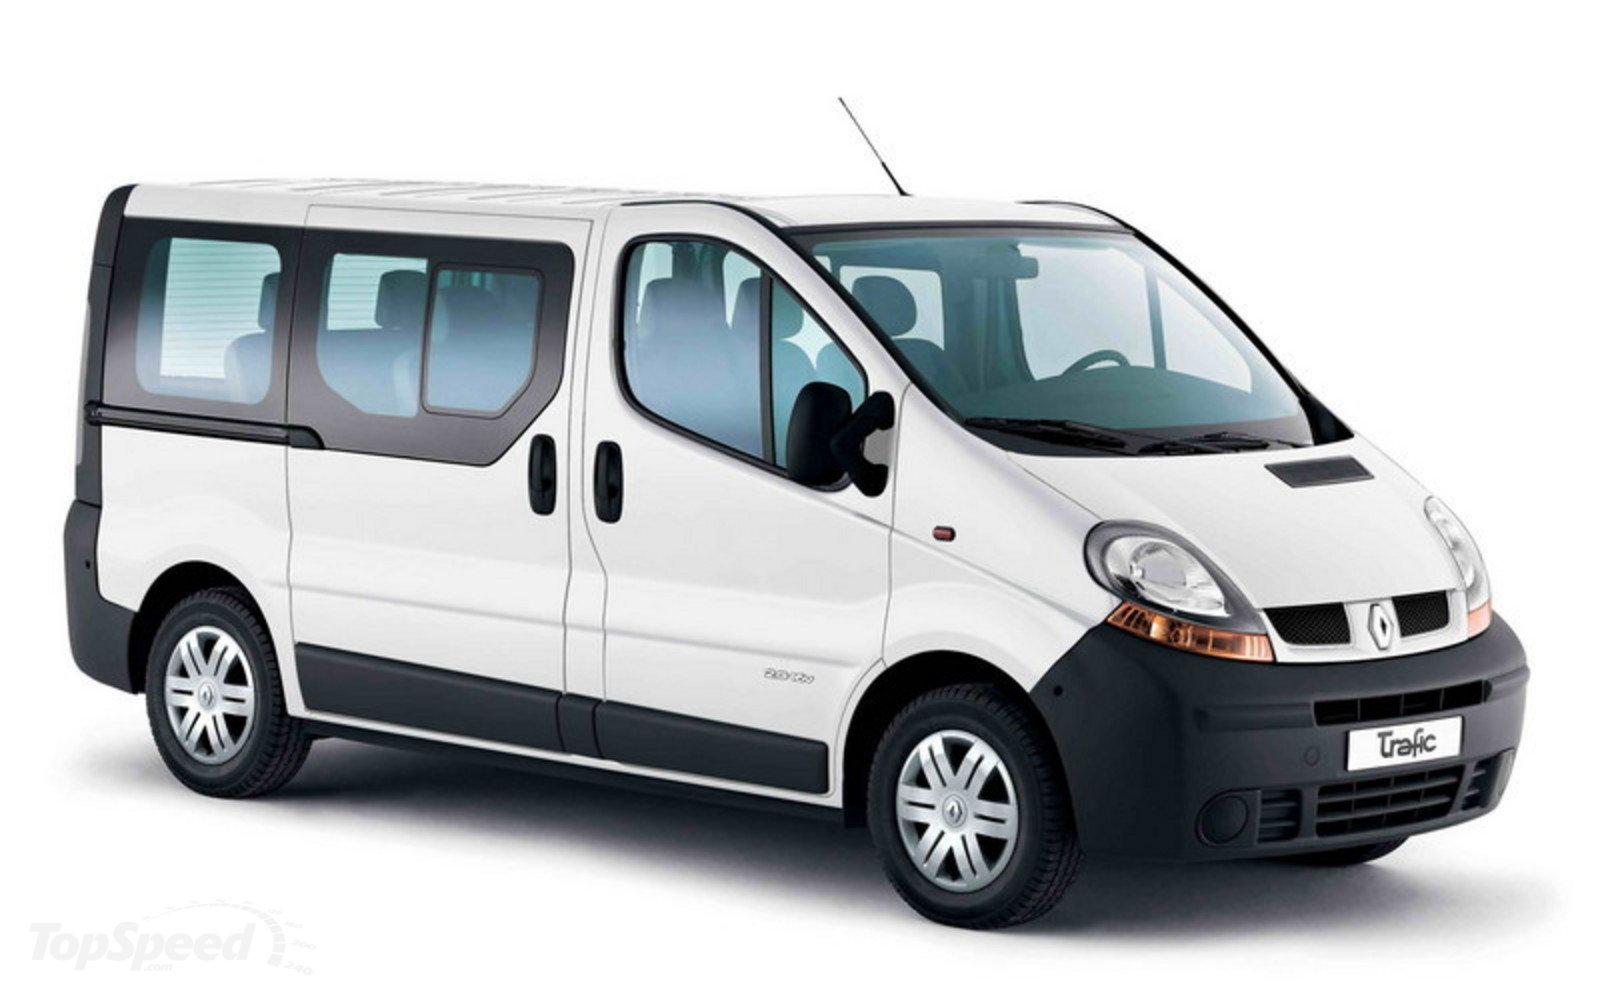 Renault Trafic Photos Informations Articles Nissan Primastar Wiring Diagram Free Download 6